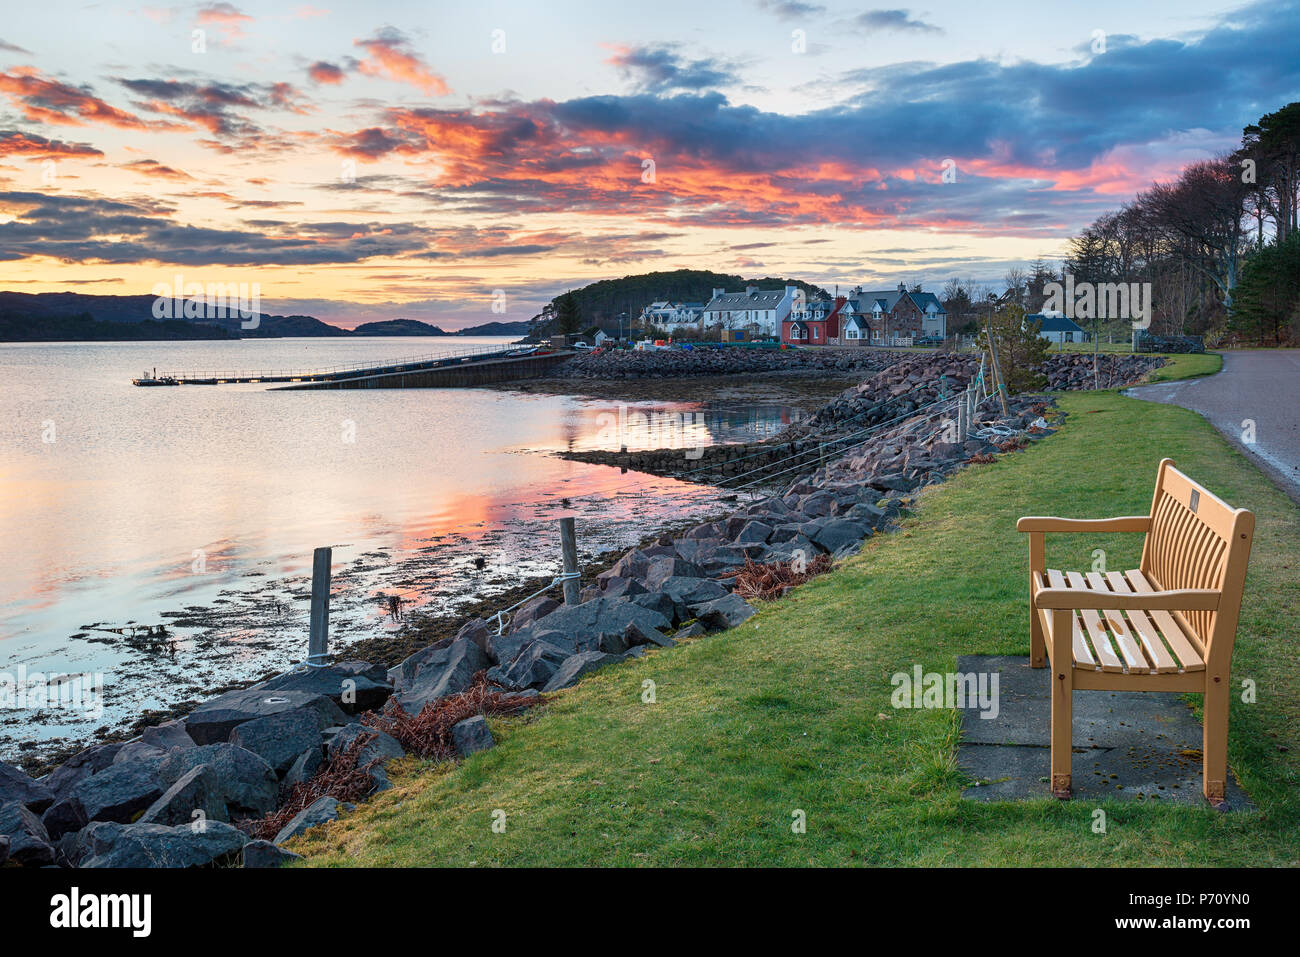 Stunning sunset over the fishing village of Shieldaig near Applecross on the NC500 tourist route in Scotland - Stock Image